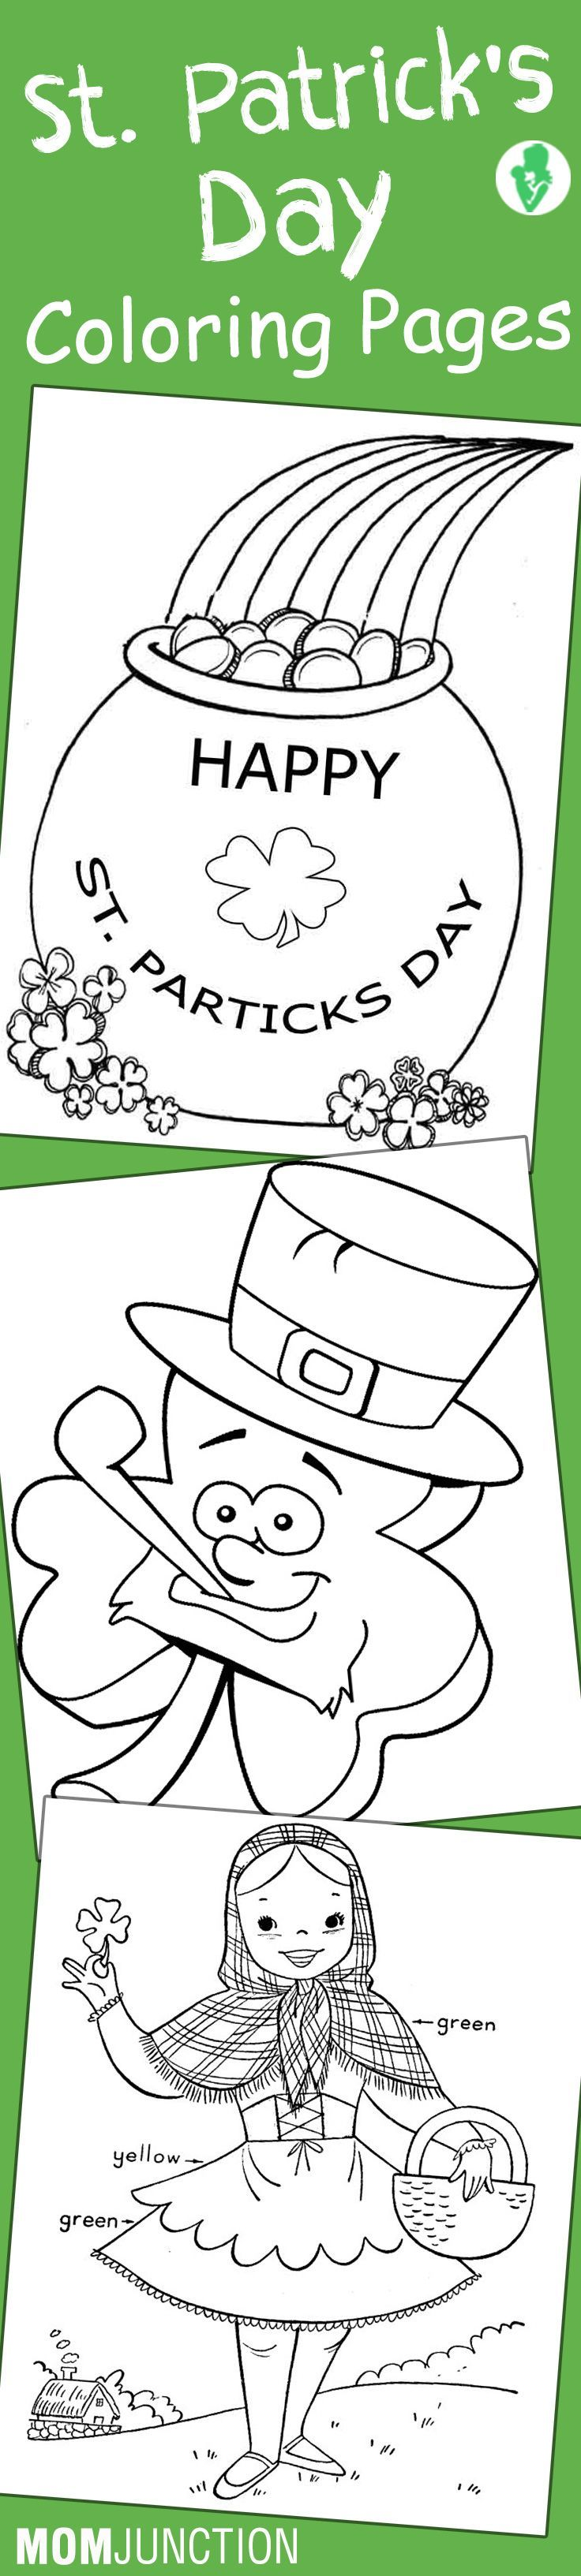 Fill in coloring games online - Top 25 Free Printable St Patrick S Day Coloring Pages Online